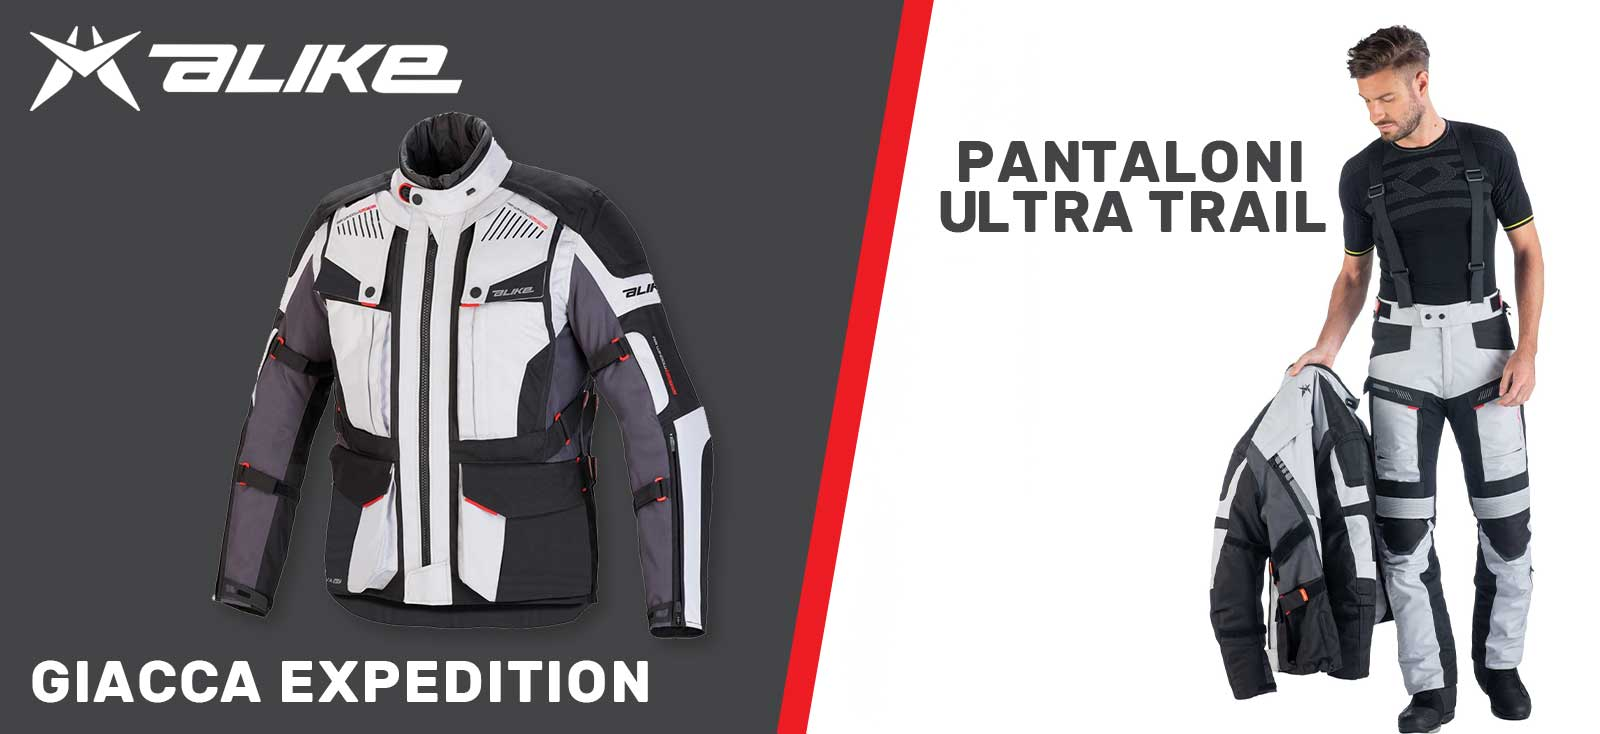 alike_expedition_ultra_trail